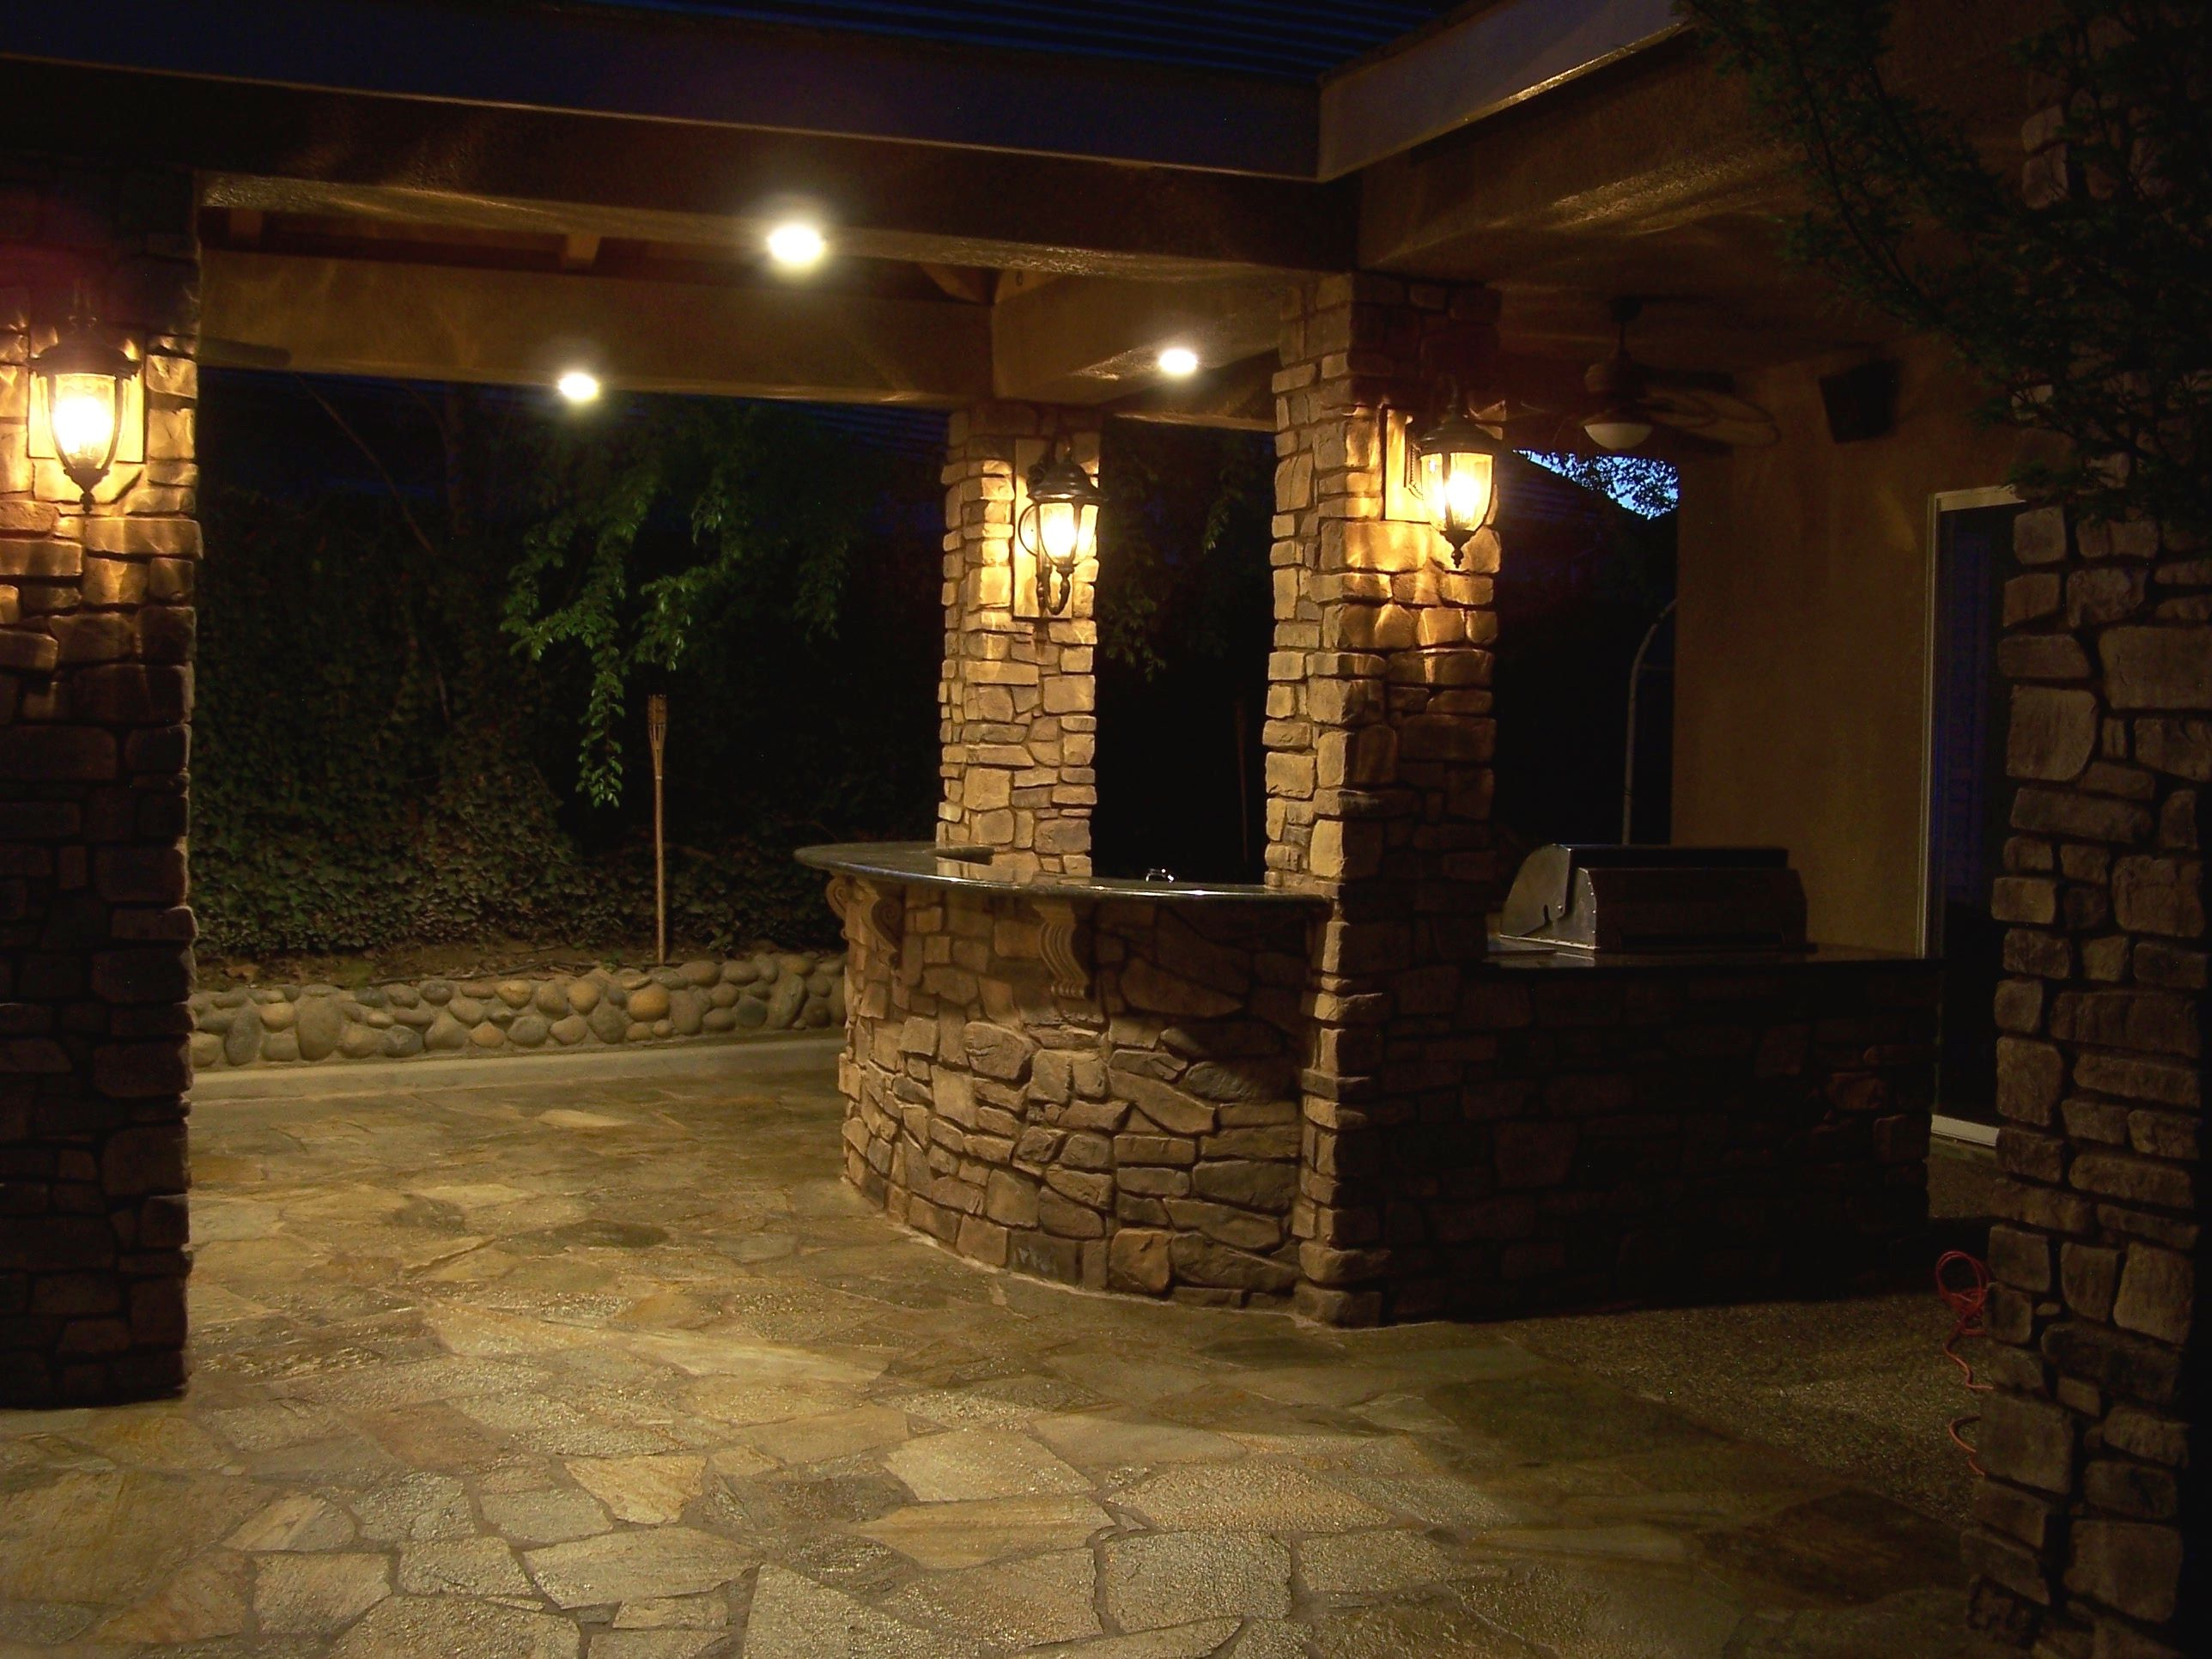 3416cc91e5743b9ea0c5de9d4f339059 Top Result 53 Inspirational Outside Stone Fireplace